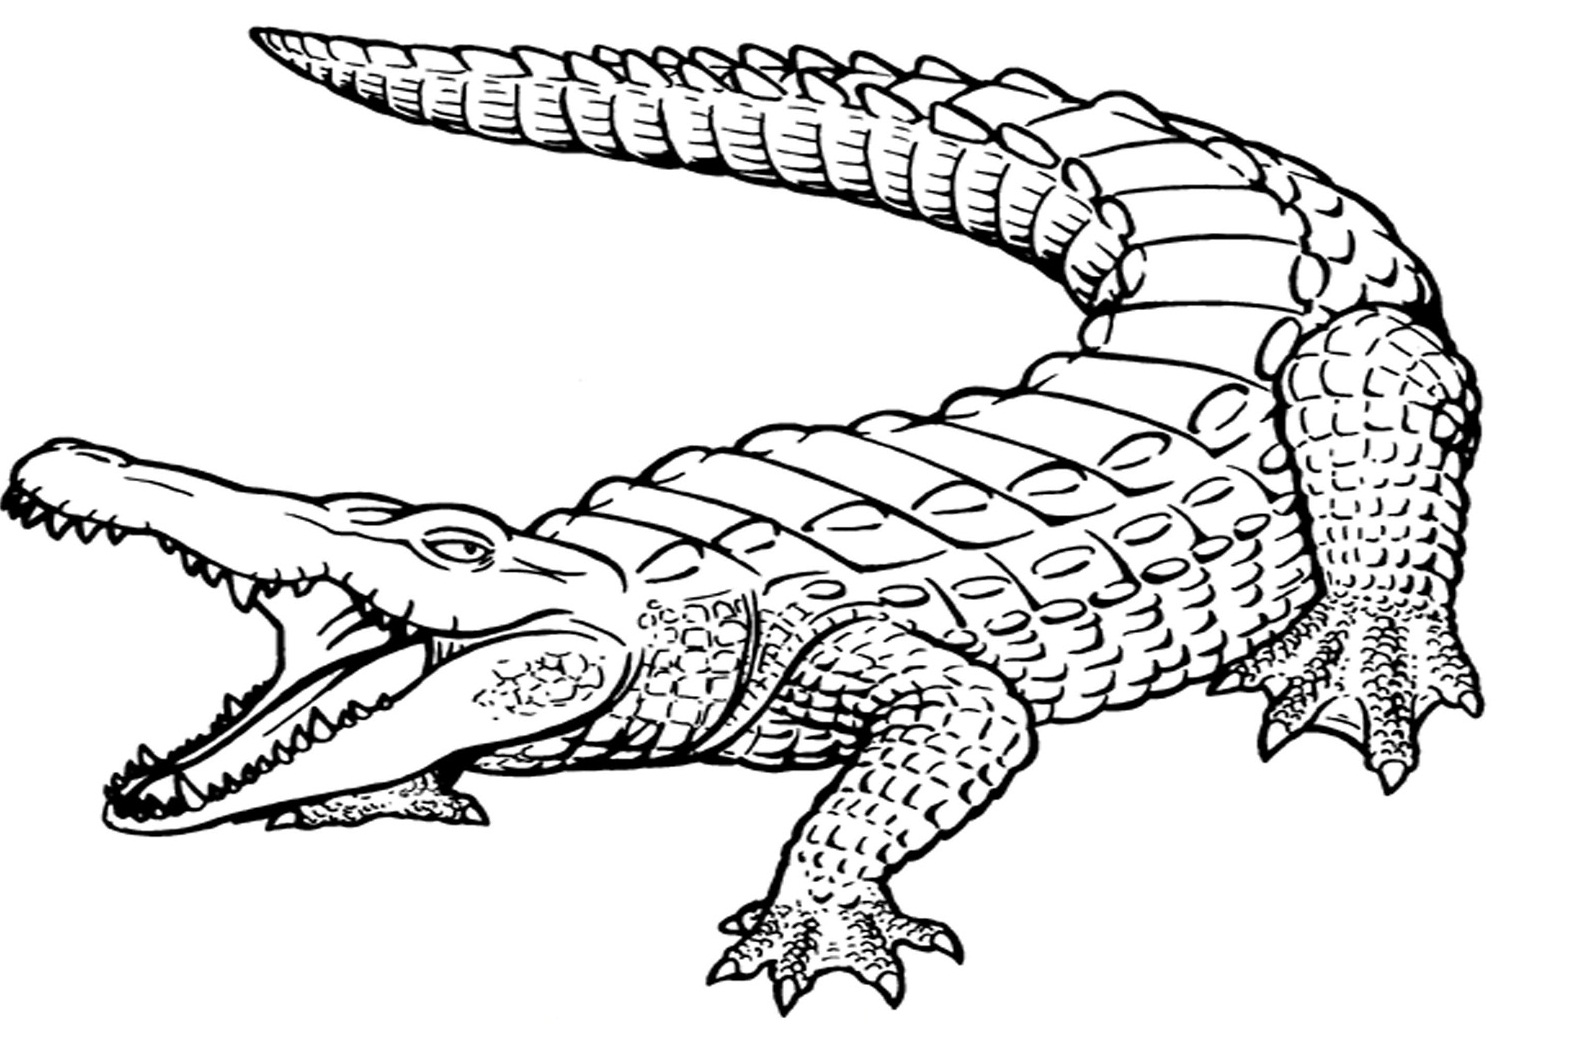 picture of a crocodile to colour free printable crocodile coloring pages for kids colour crocodile to a of picture